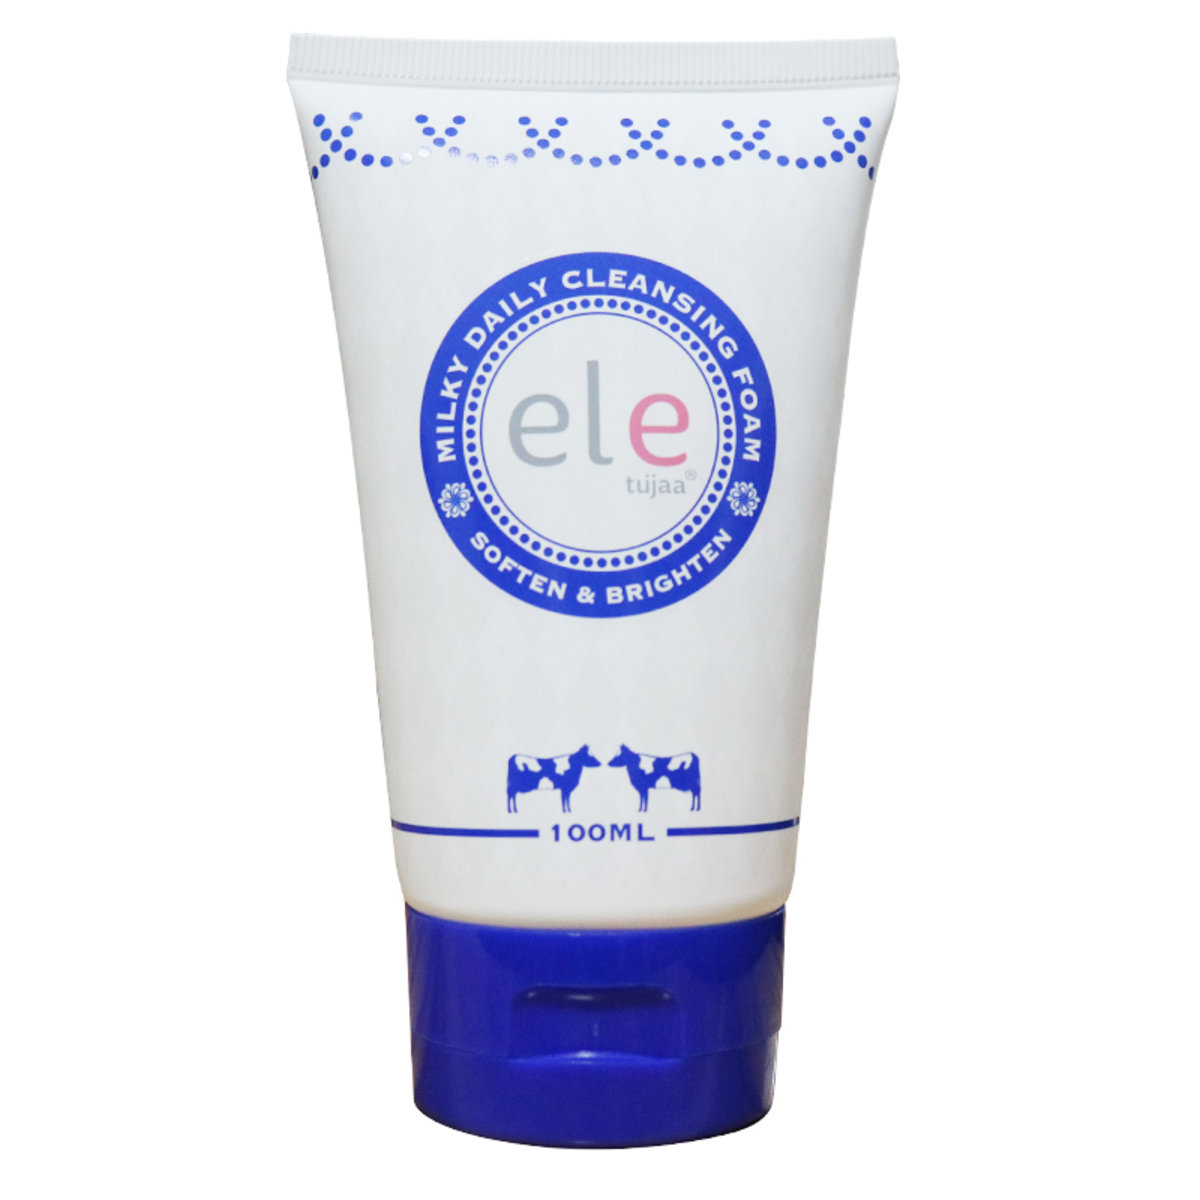 Milky Daily Cleansing Foam 100ml